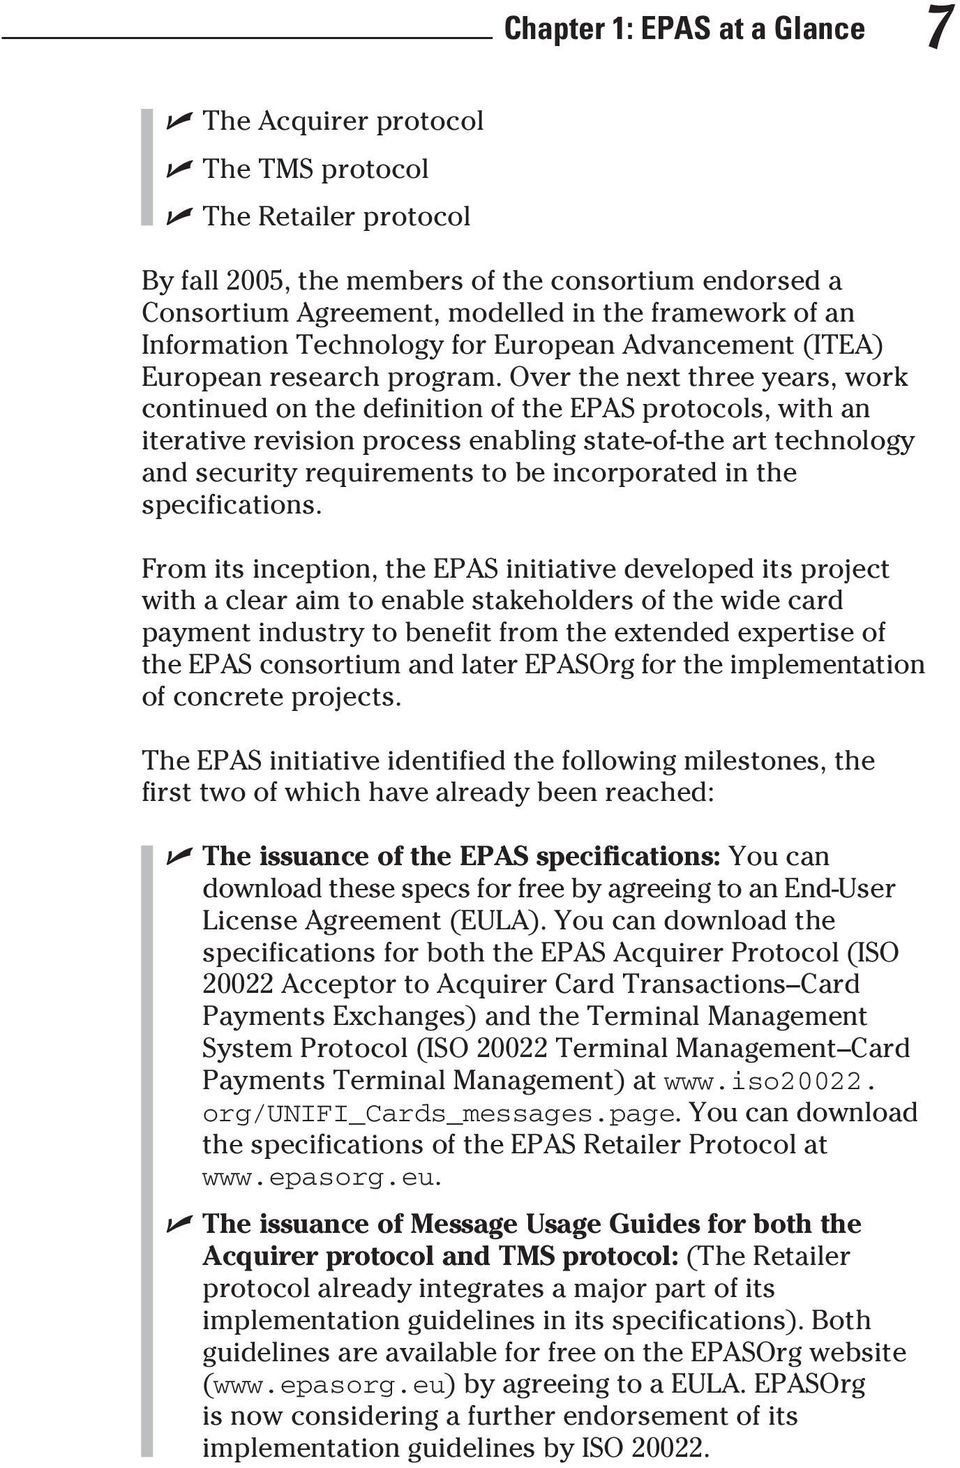 Over the next three years, work continued on the definition of the EPAS protocols, with an iterative revision process enabling state-of-the art technology and security requirements to be incorporated